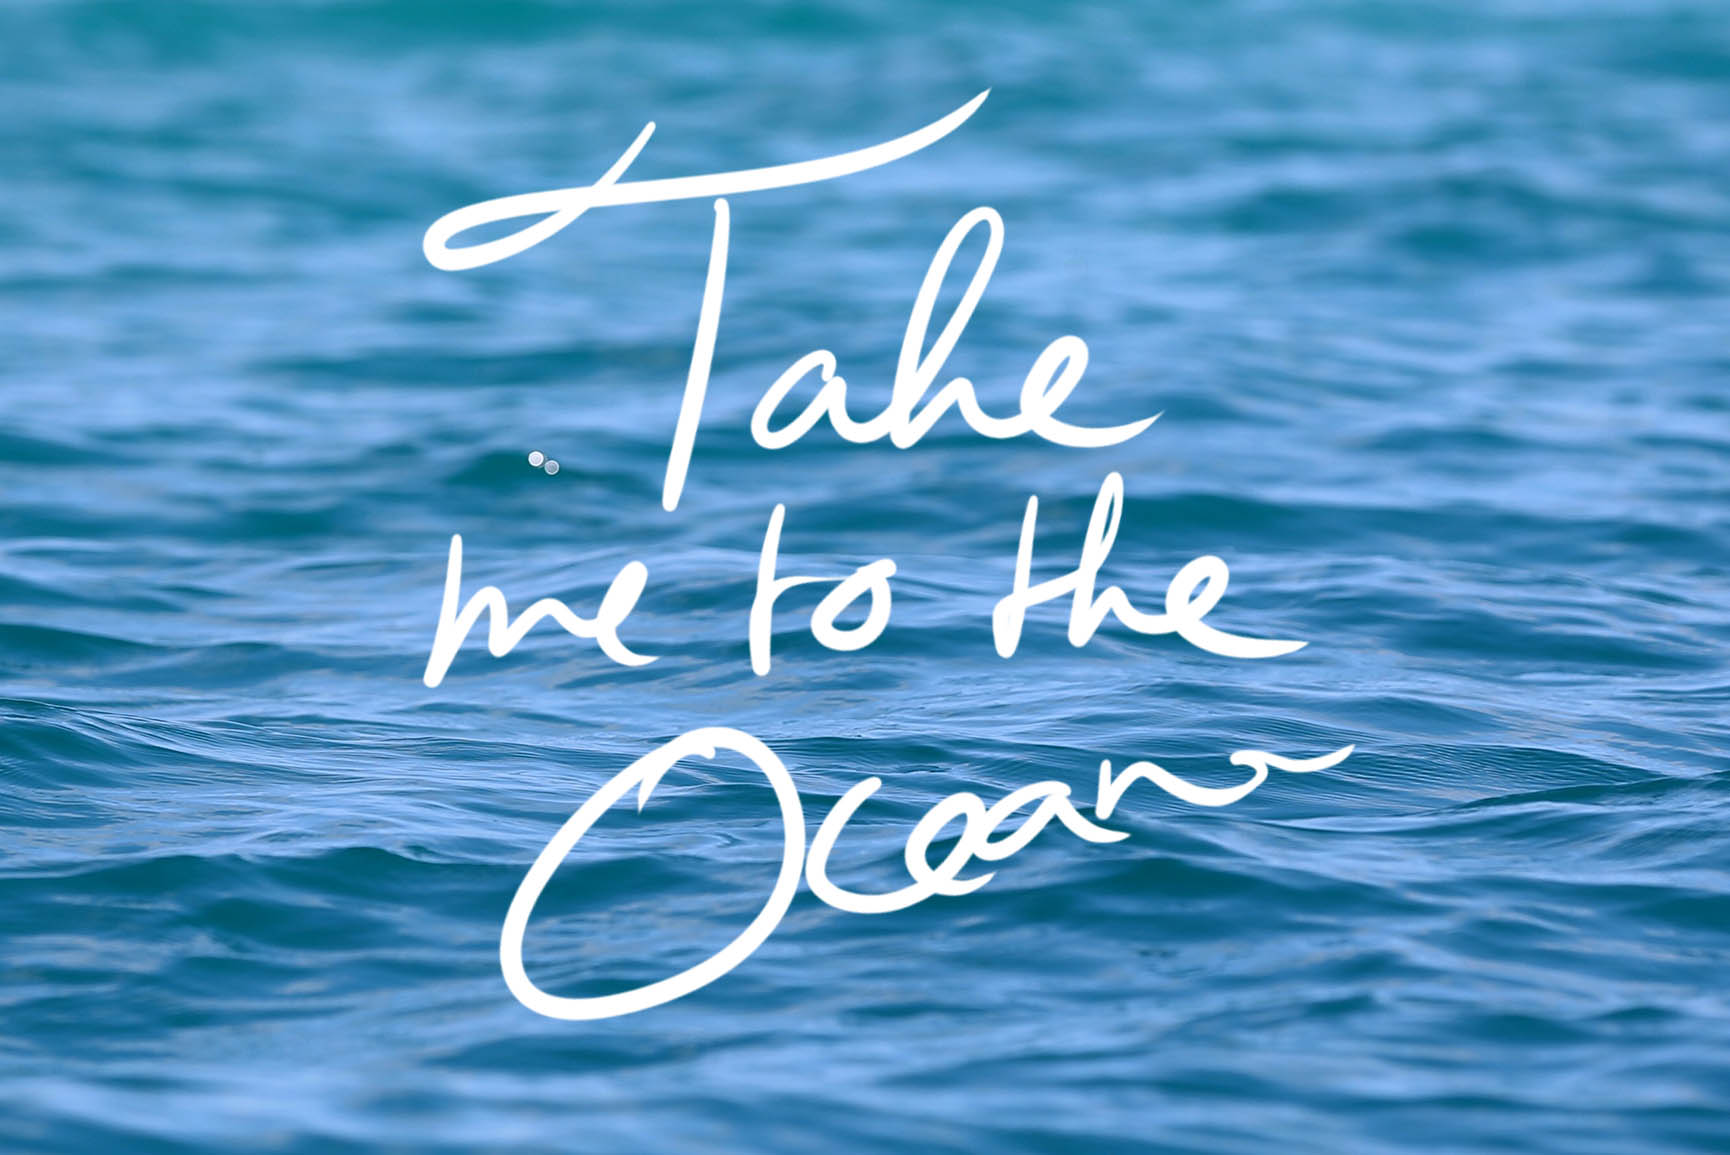 Trendy Quote Wallpapers For Computor 3 Adorable Ocean Inspired Iphone X Wallpapers Preppy